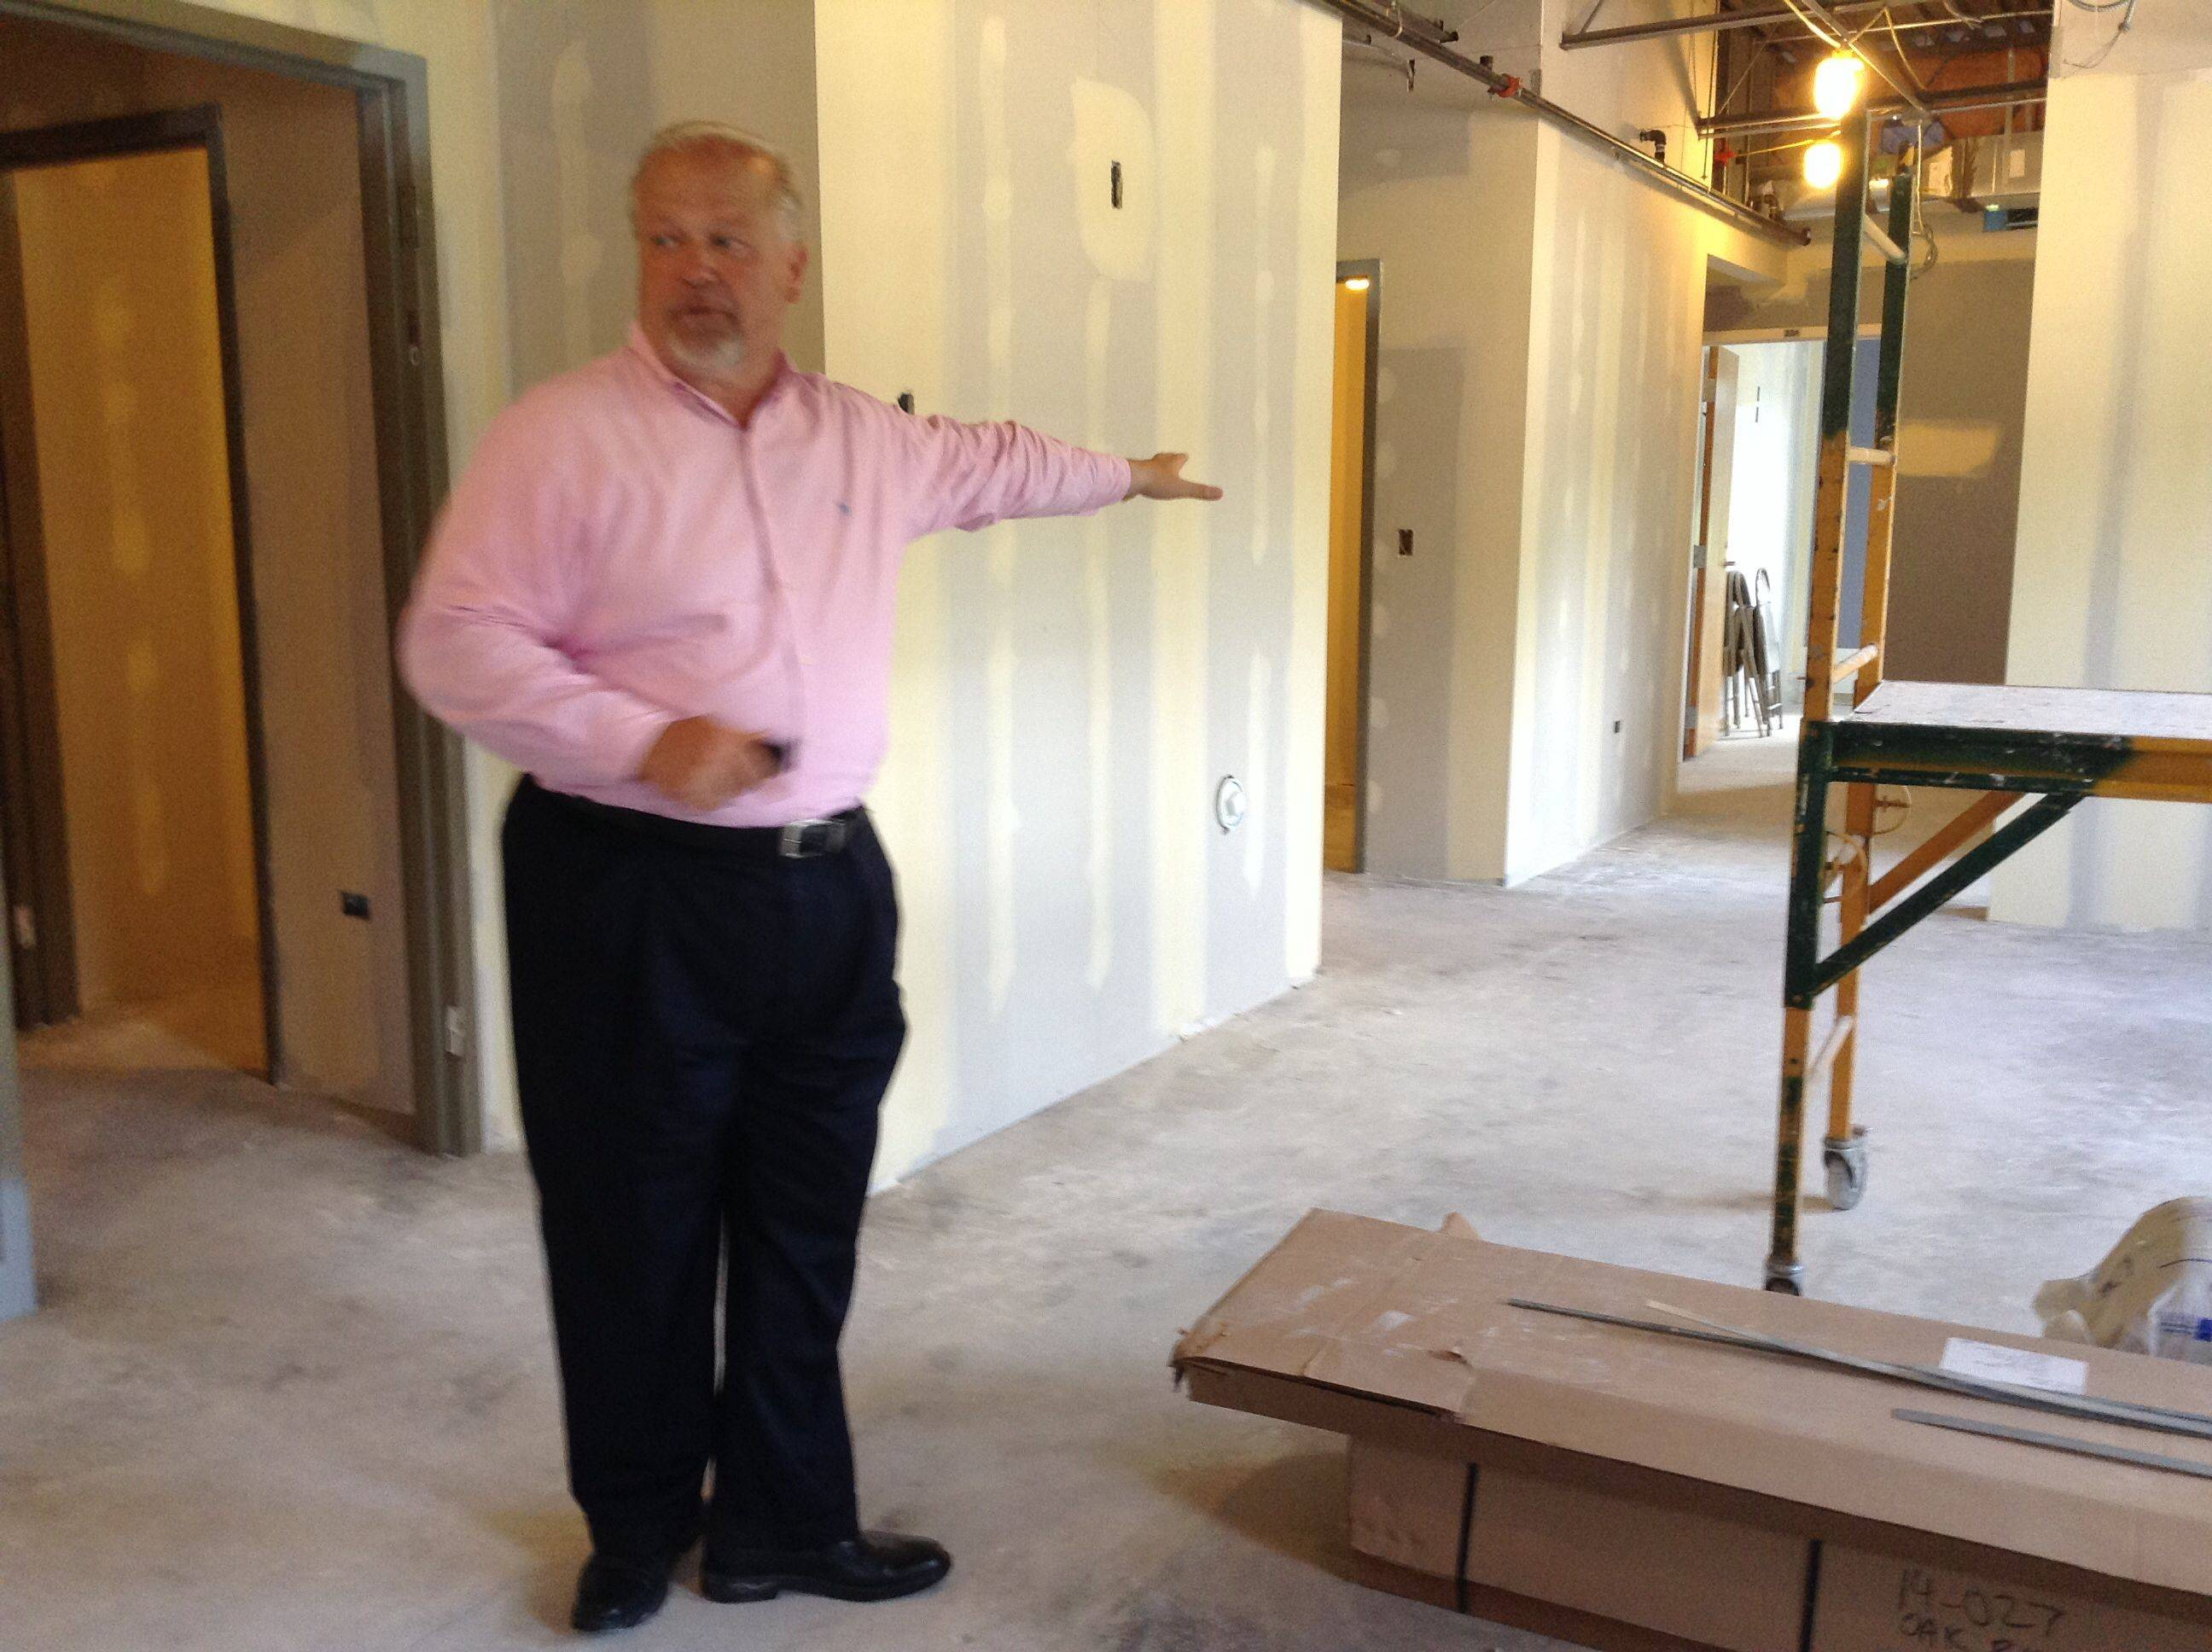 Chuck Bumbales, assistant superintendent of operations for Community Unit District 300, leads a tour through the district's old Carpentersville administration building, which is being converted into a school for Oak Ridge School. For 17 years, the alternative school was housed nearby in about a dozen trailers.